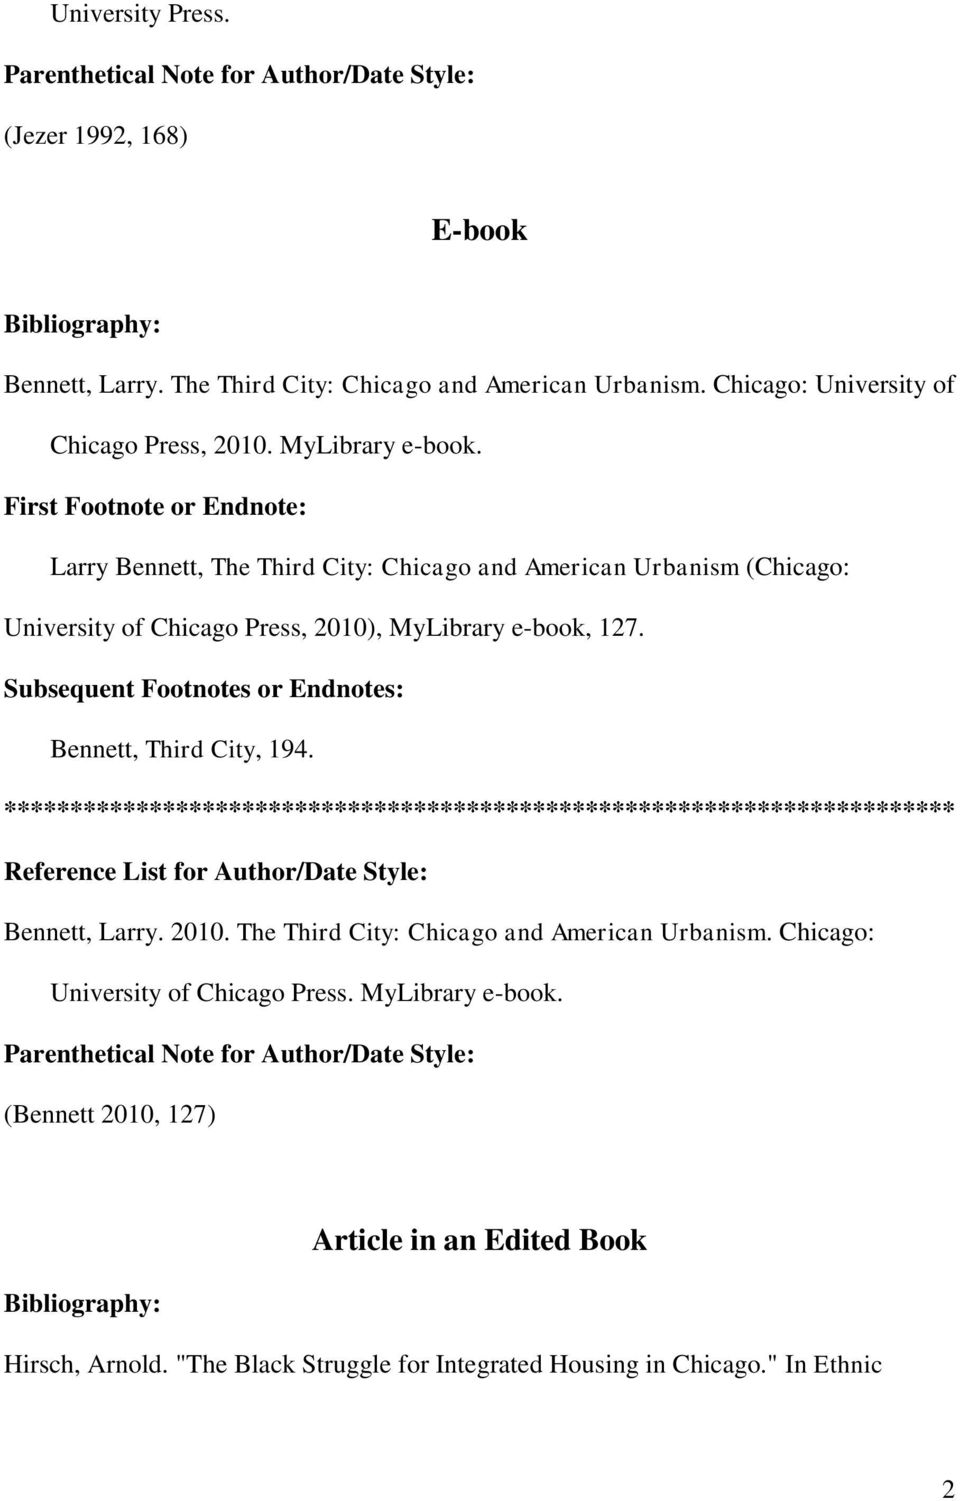 Larry Bennett, The Third City: Chicago and American Urbanism (Chicago: University of Chicago Press, 2010), MyLibrary e-book, 127.